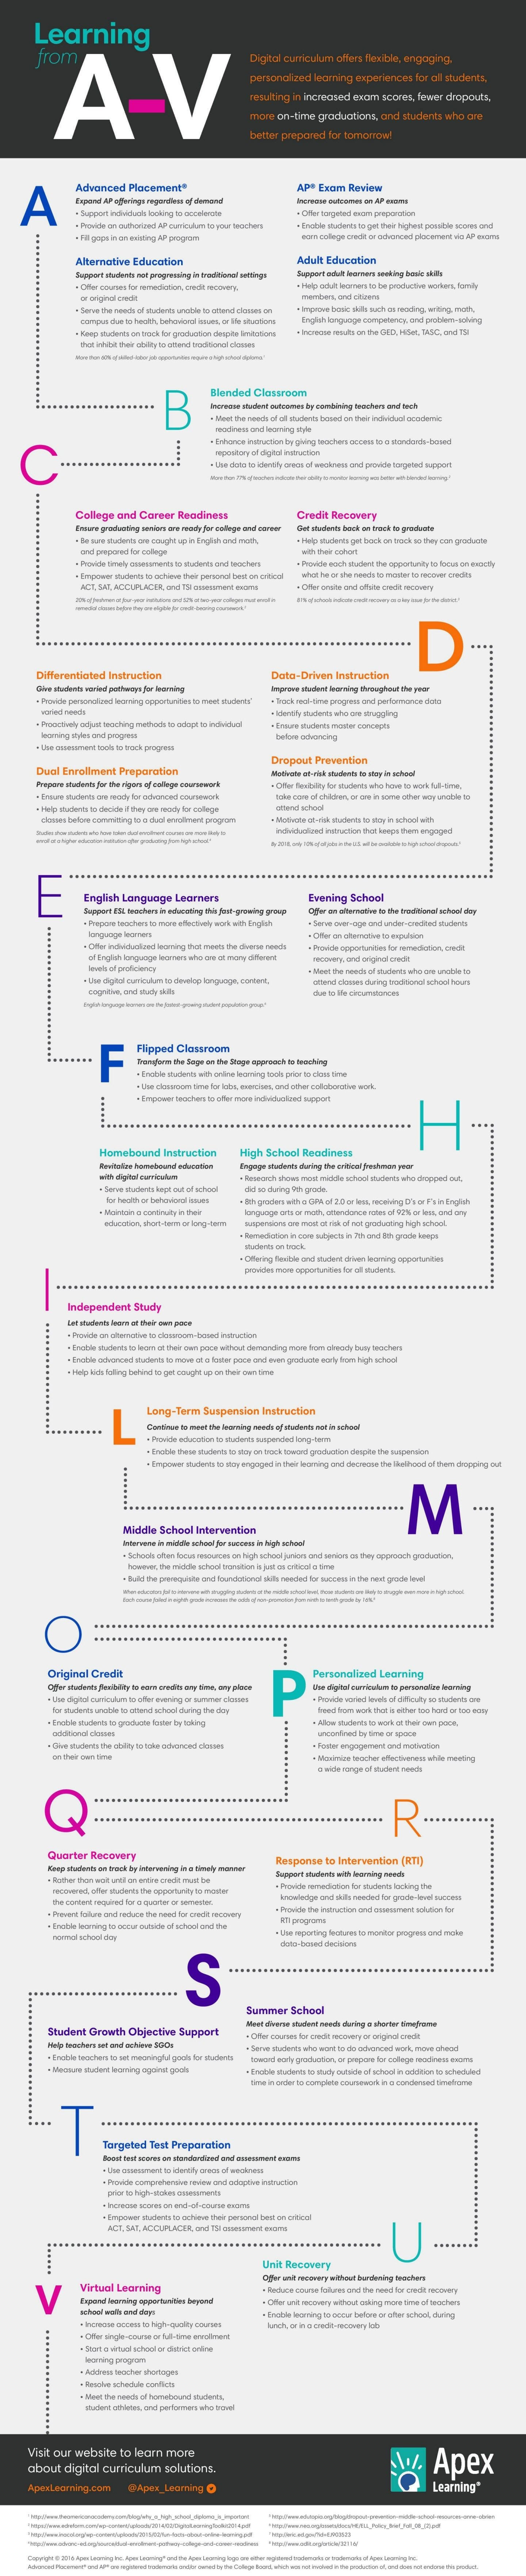 Digital Curriculum from A-V Infographic